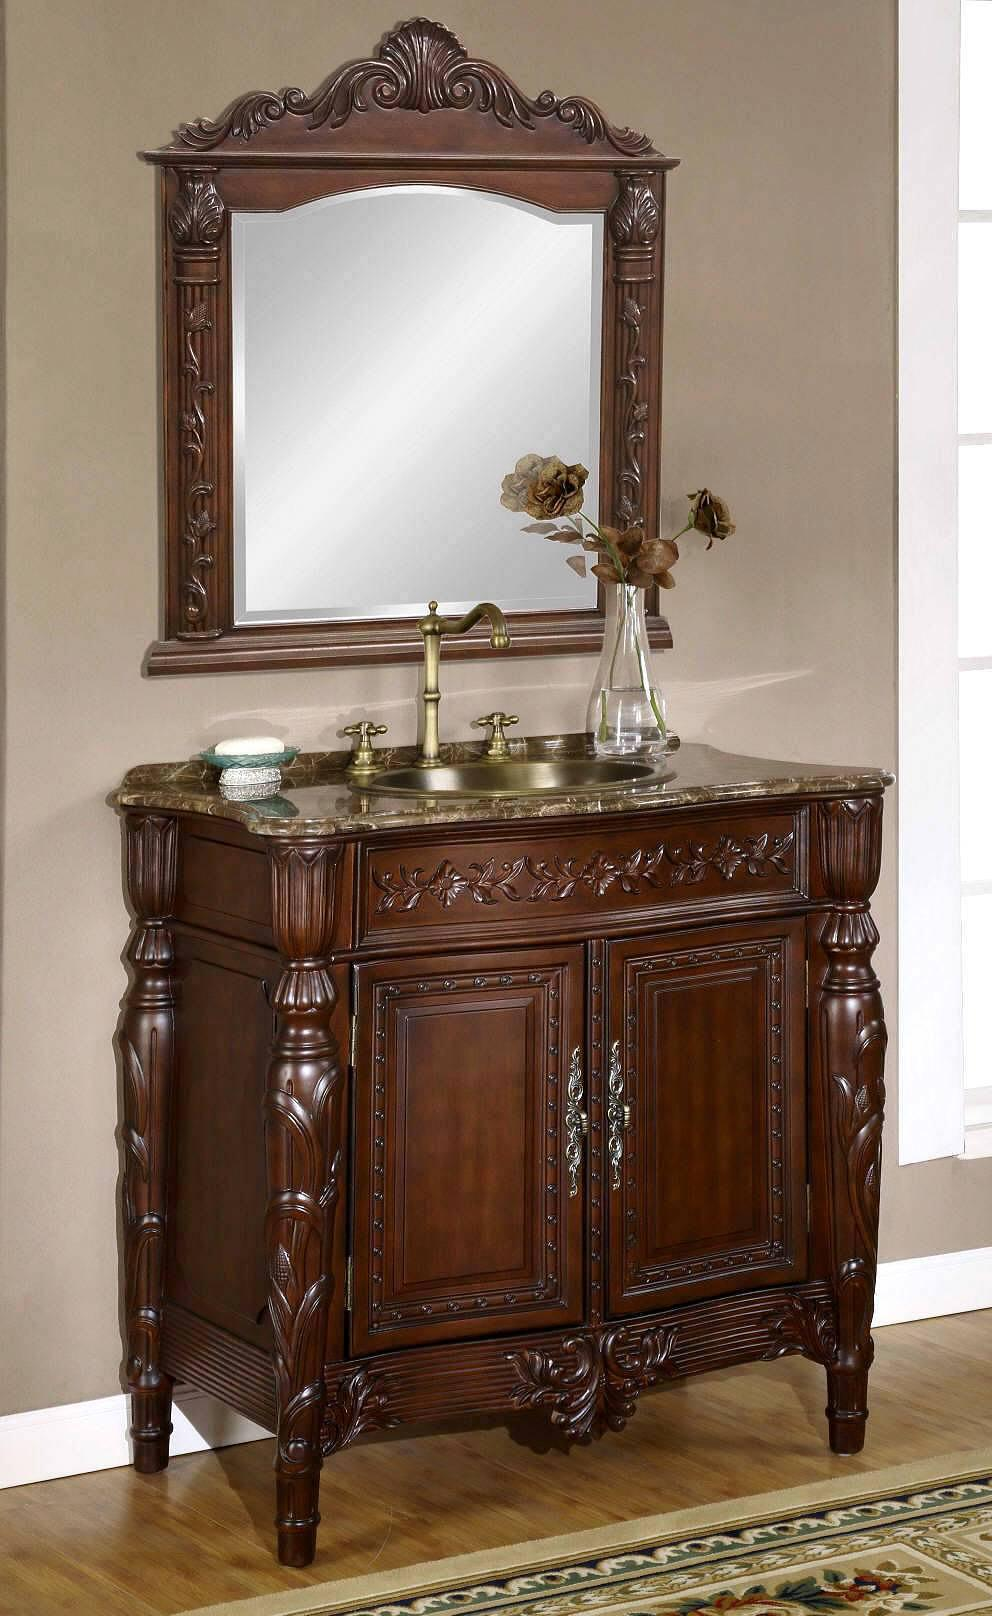 bath room mirrors and wooden c....